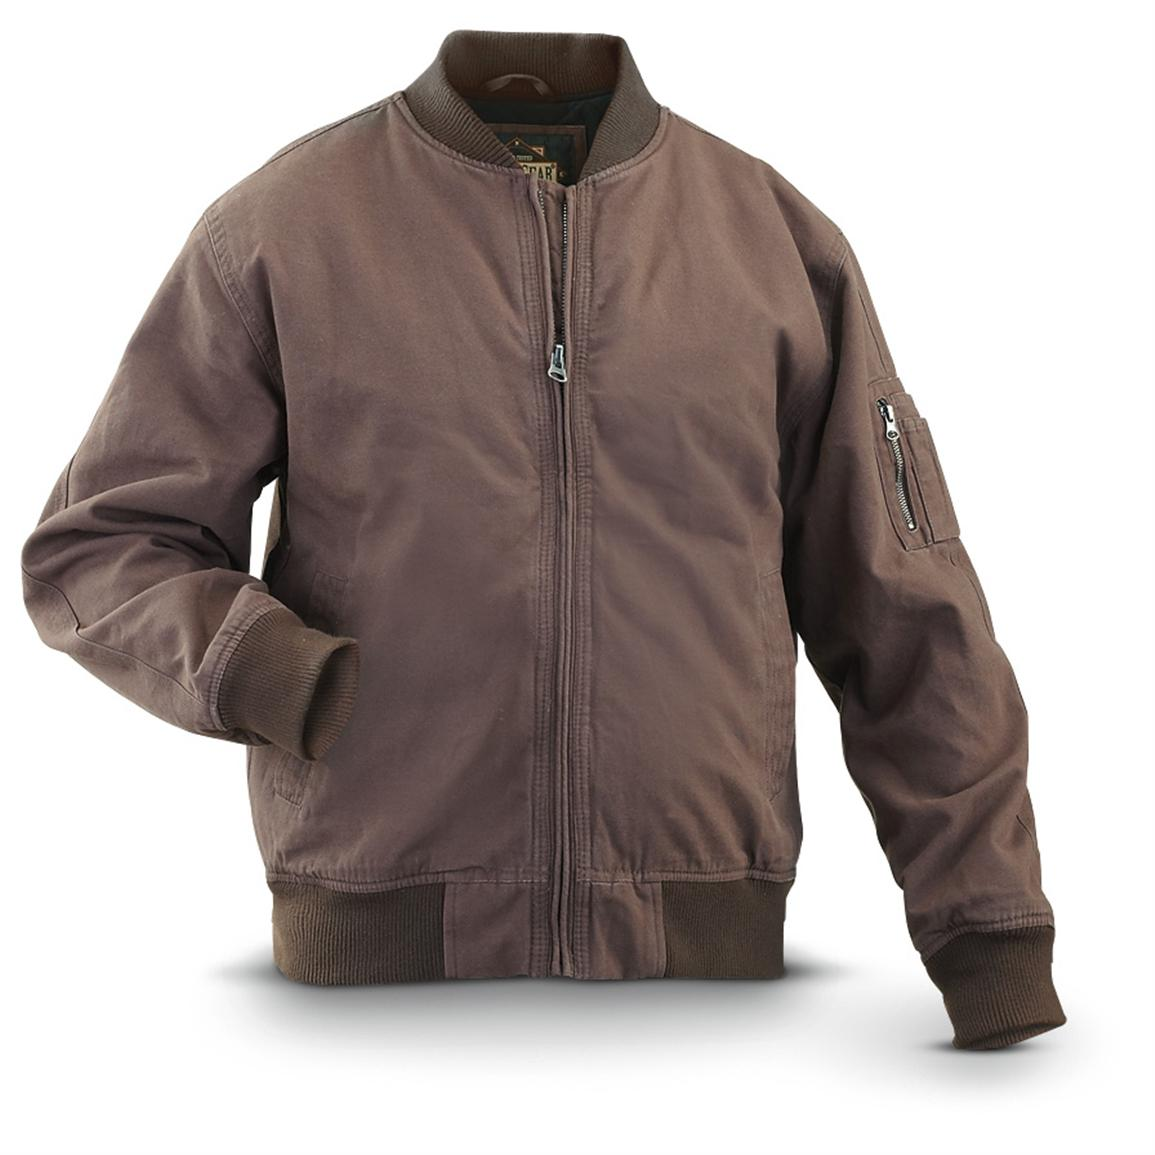 Brown Bomber Jackets Jackets